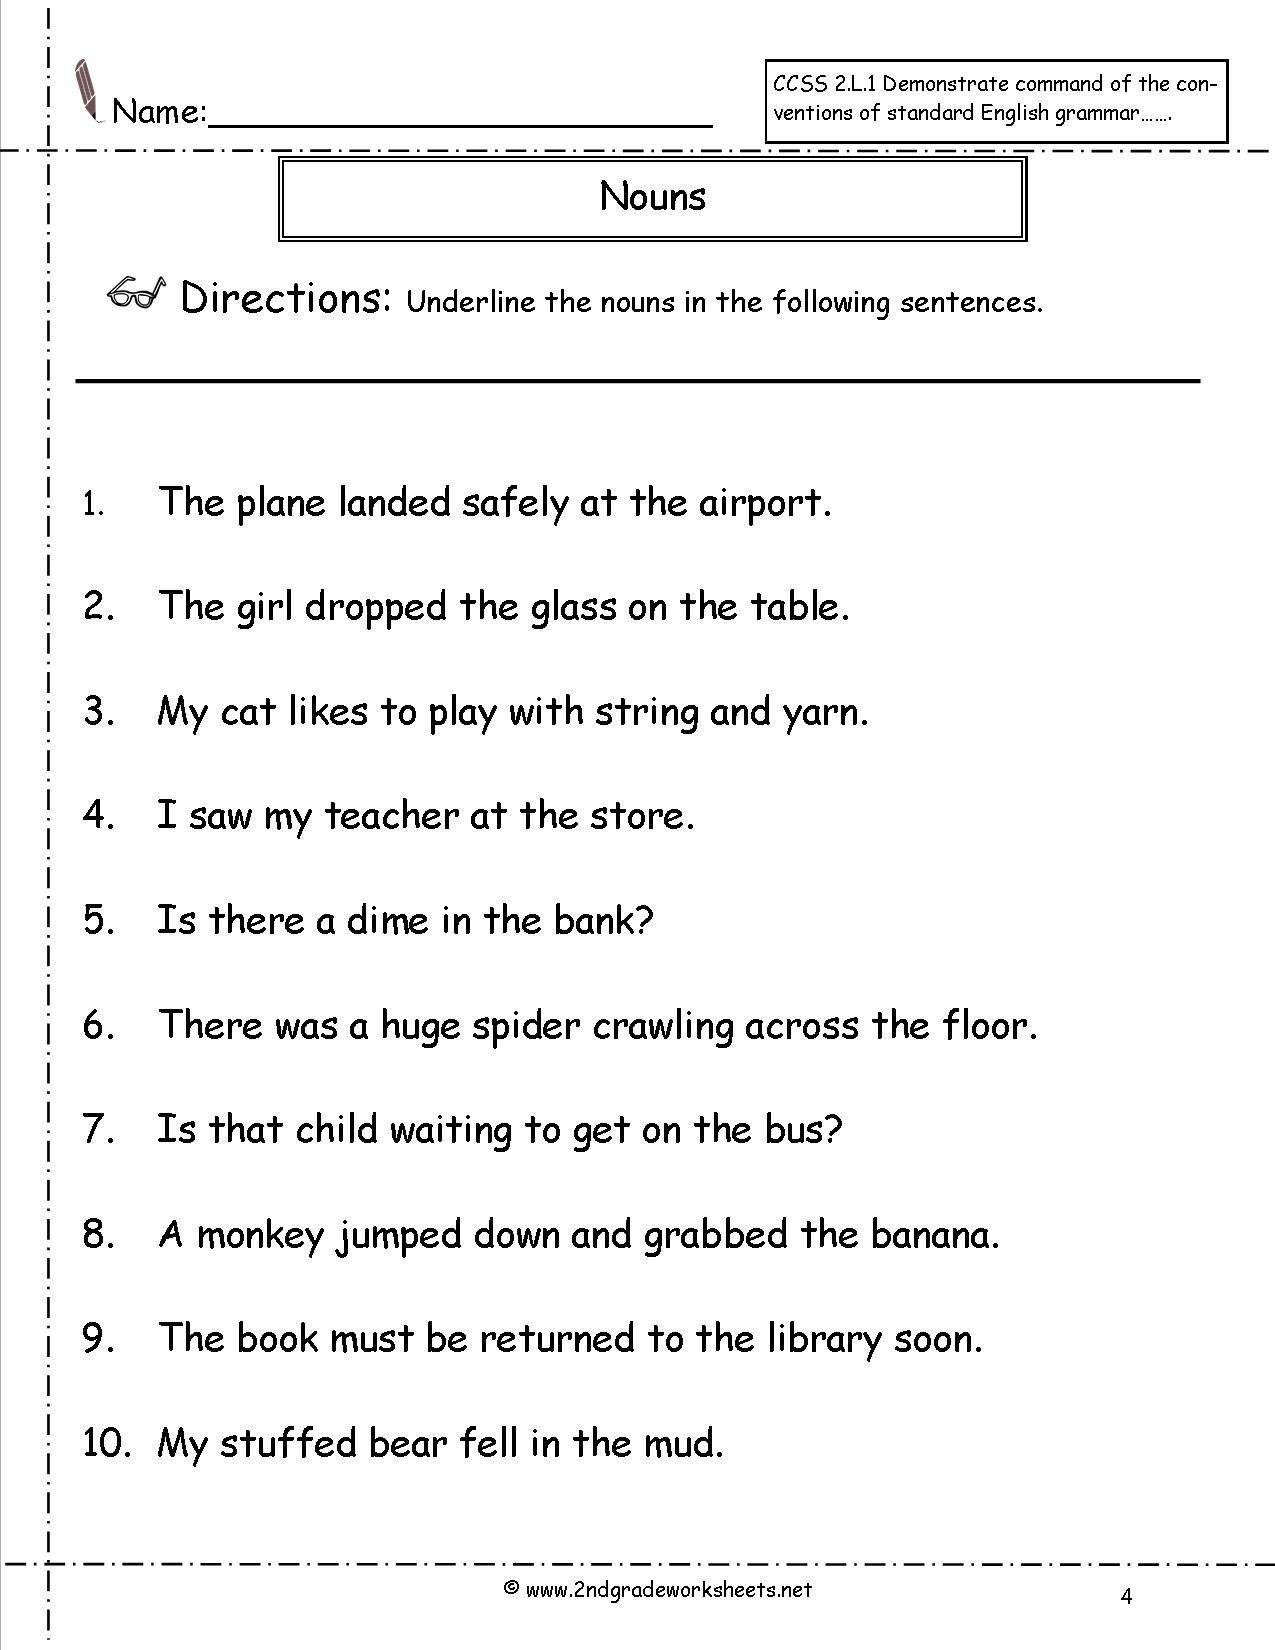 Pronoun Worksheets Second Grade Free Pronoun Worksheet for 2nd Grade